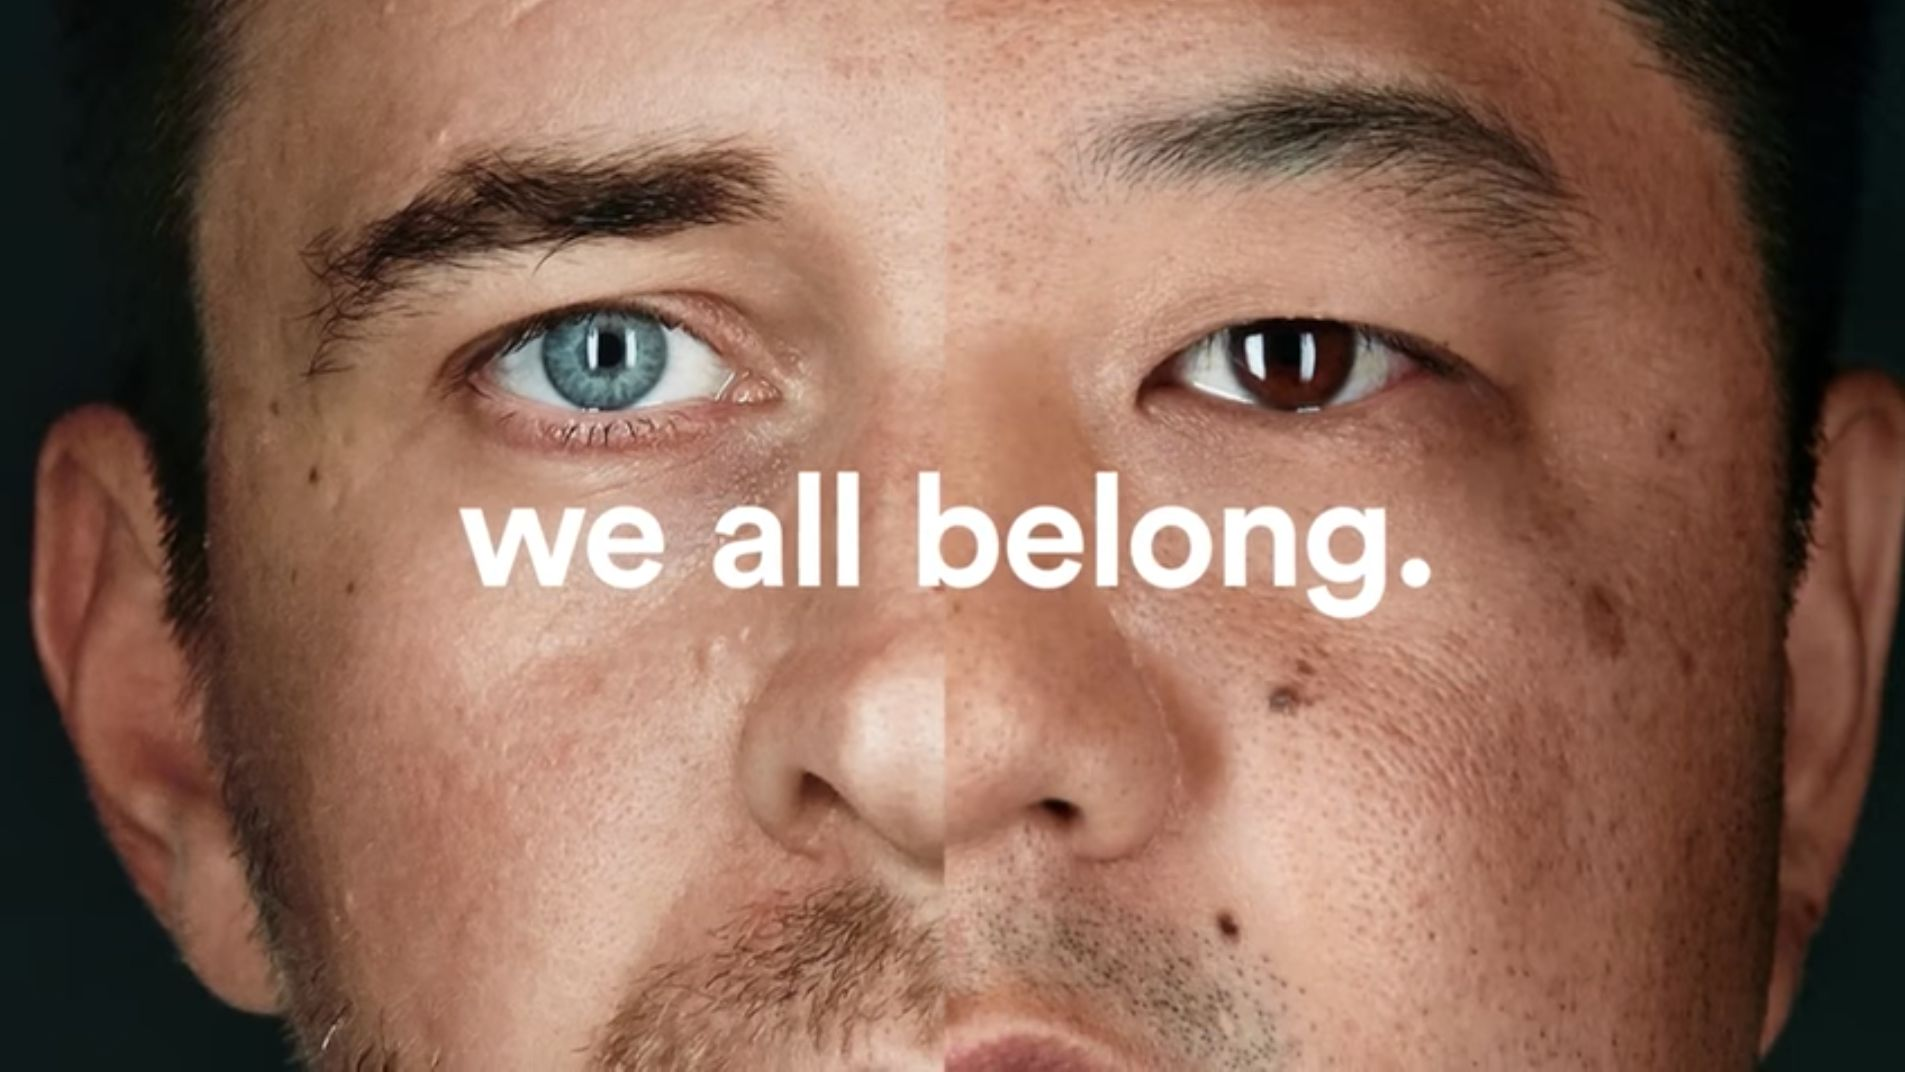 Airbnb Tackles Immigration Ban In Powerful Super Bowl